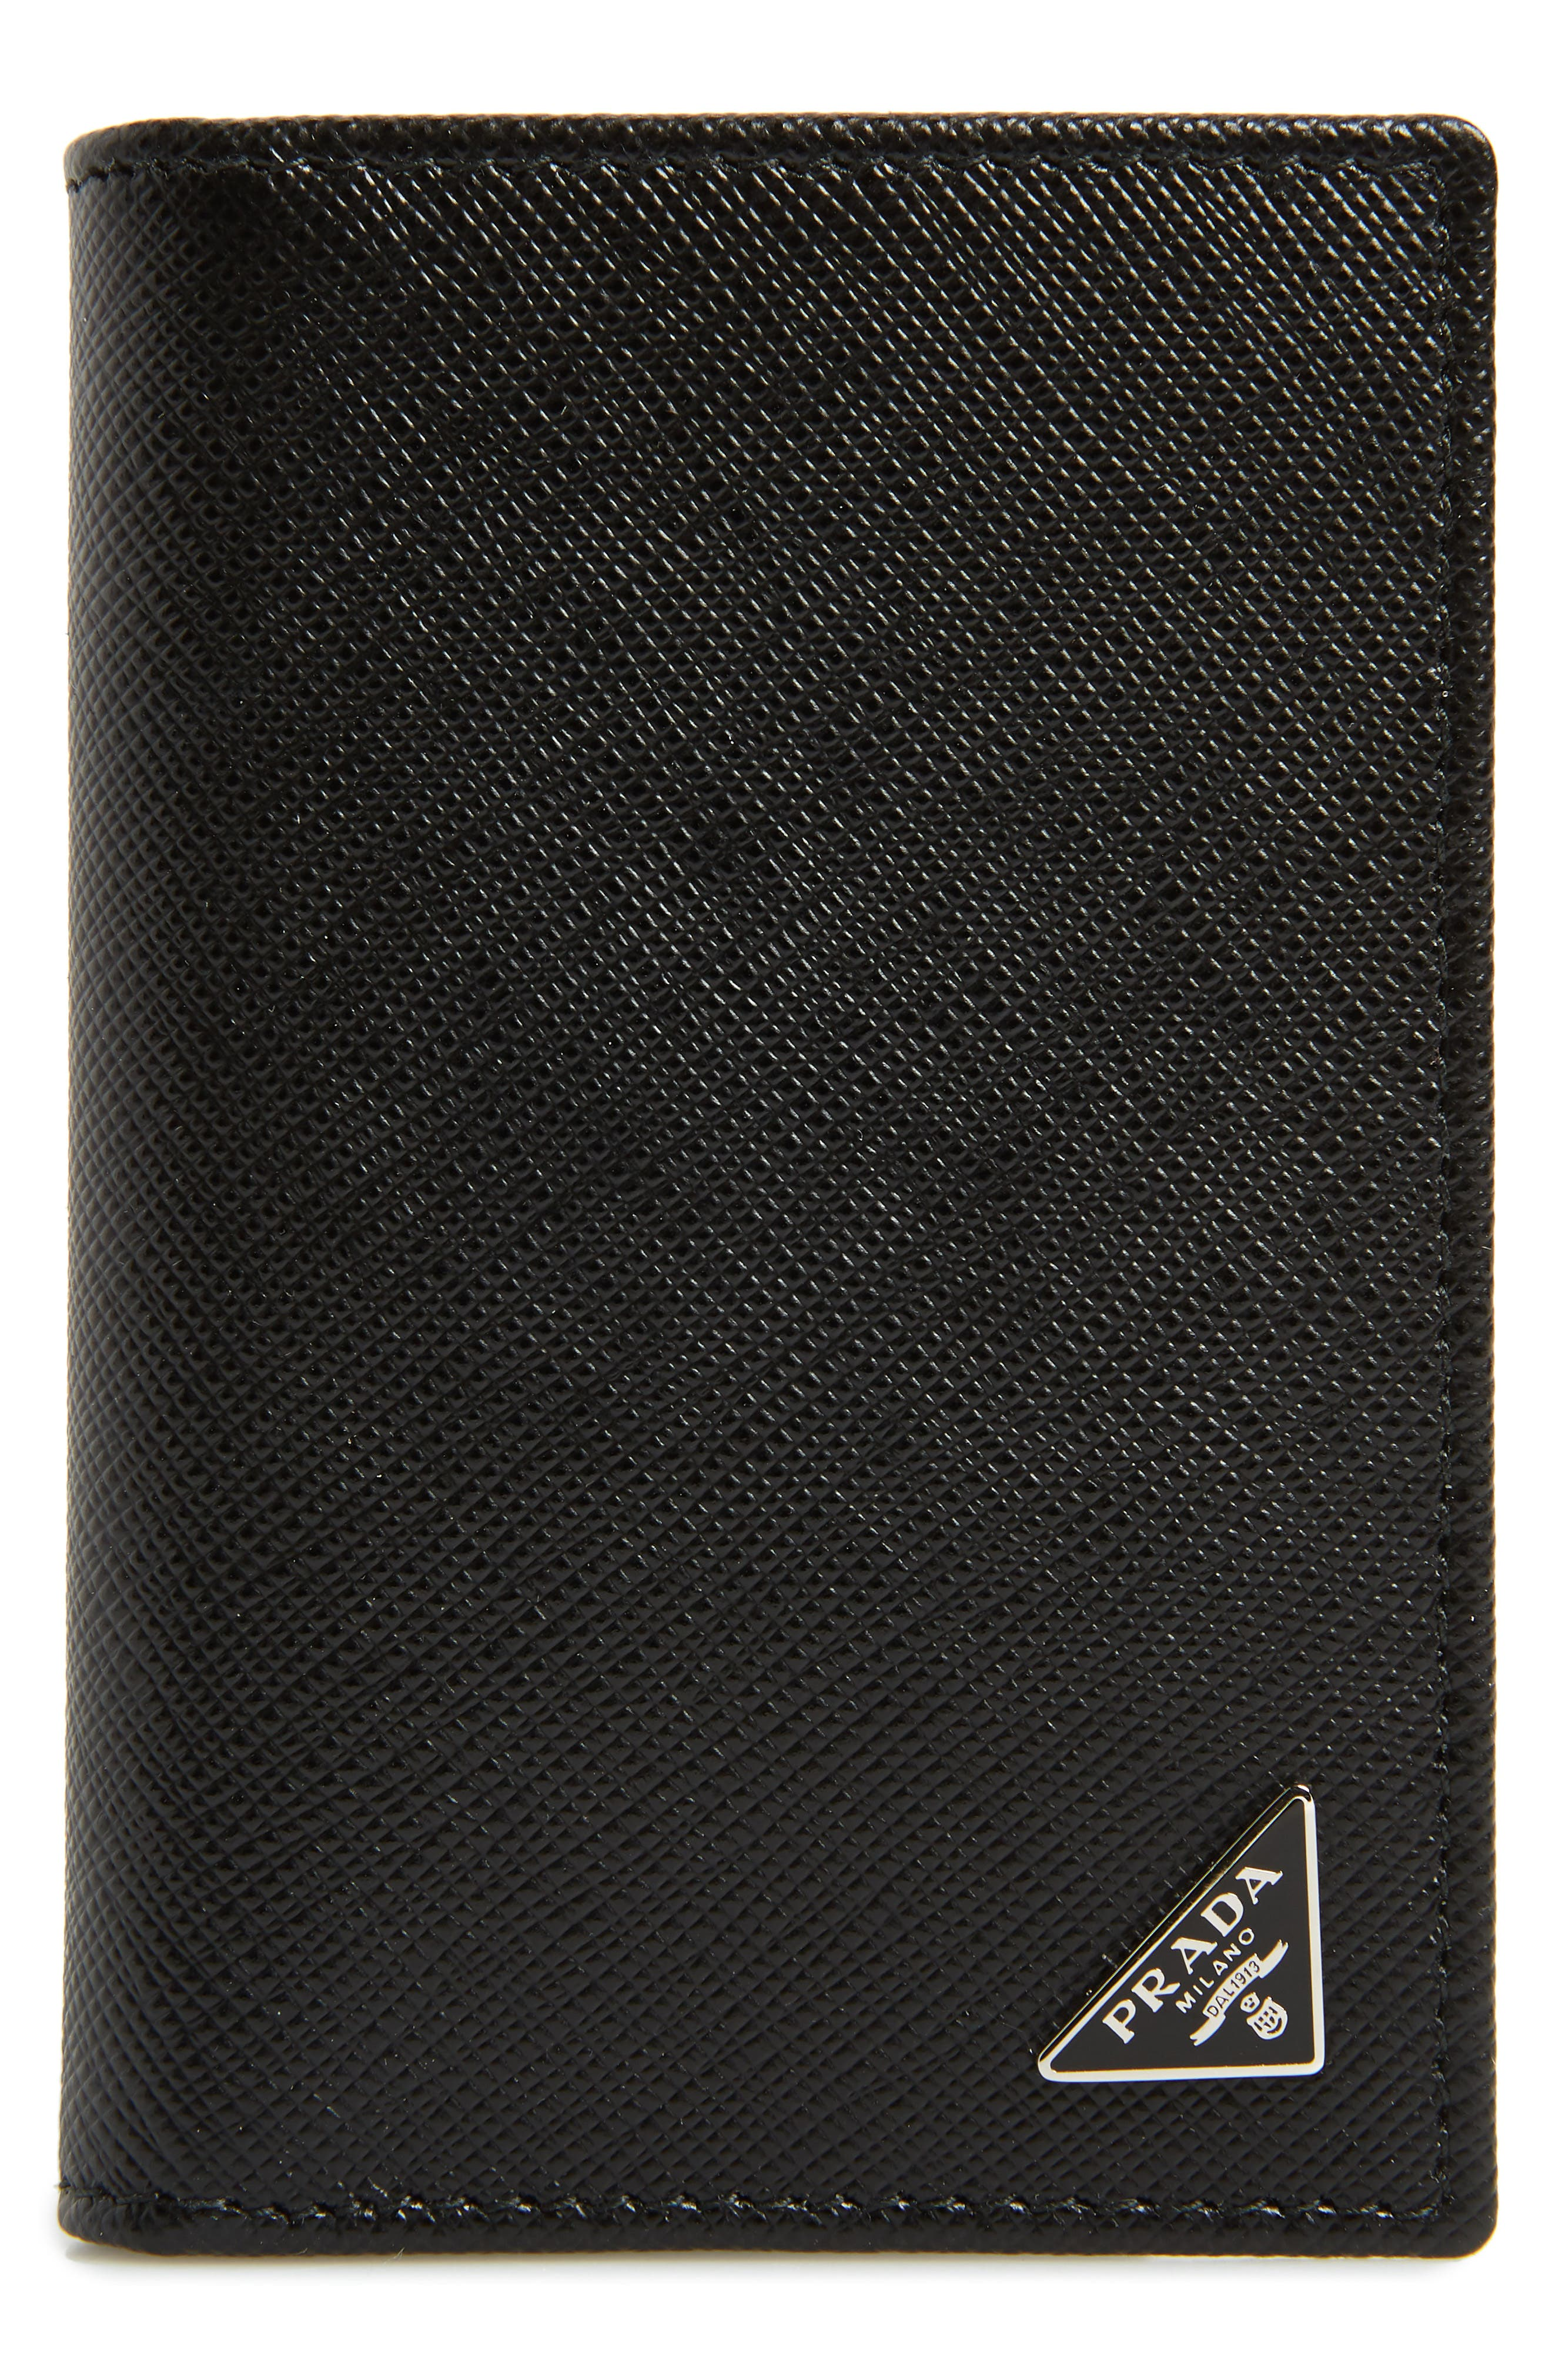 Prada Long Saffiano Leather Card Case